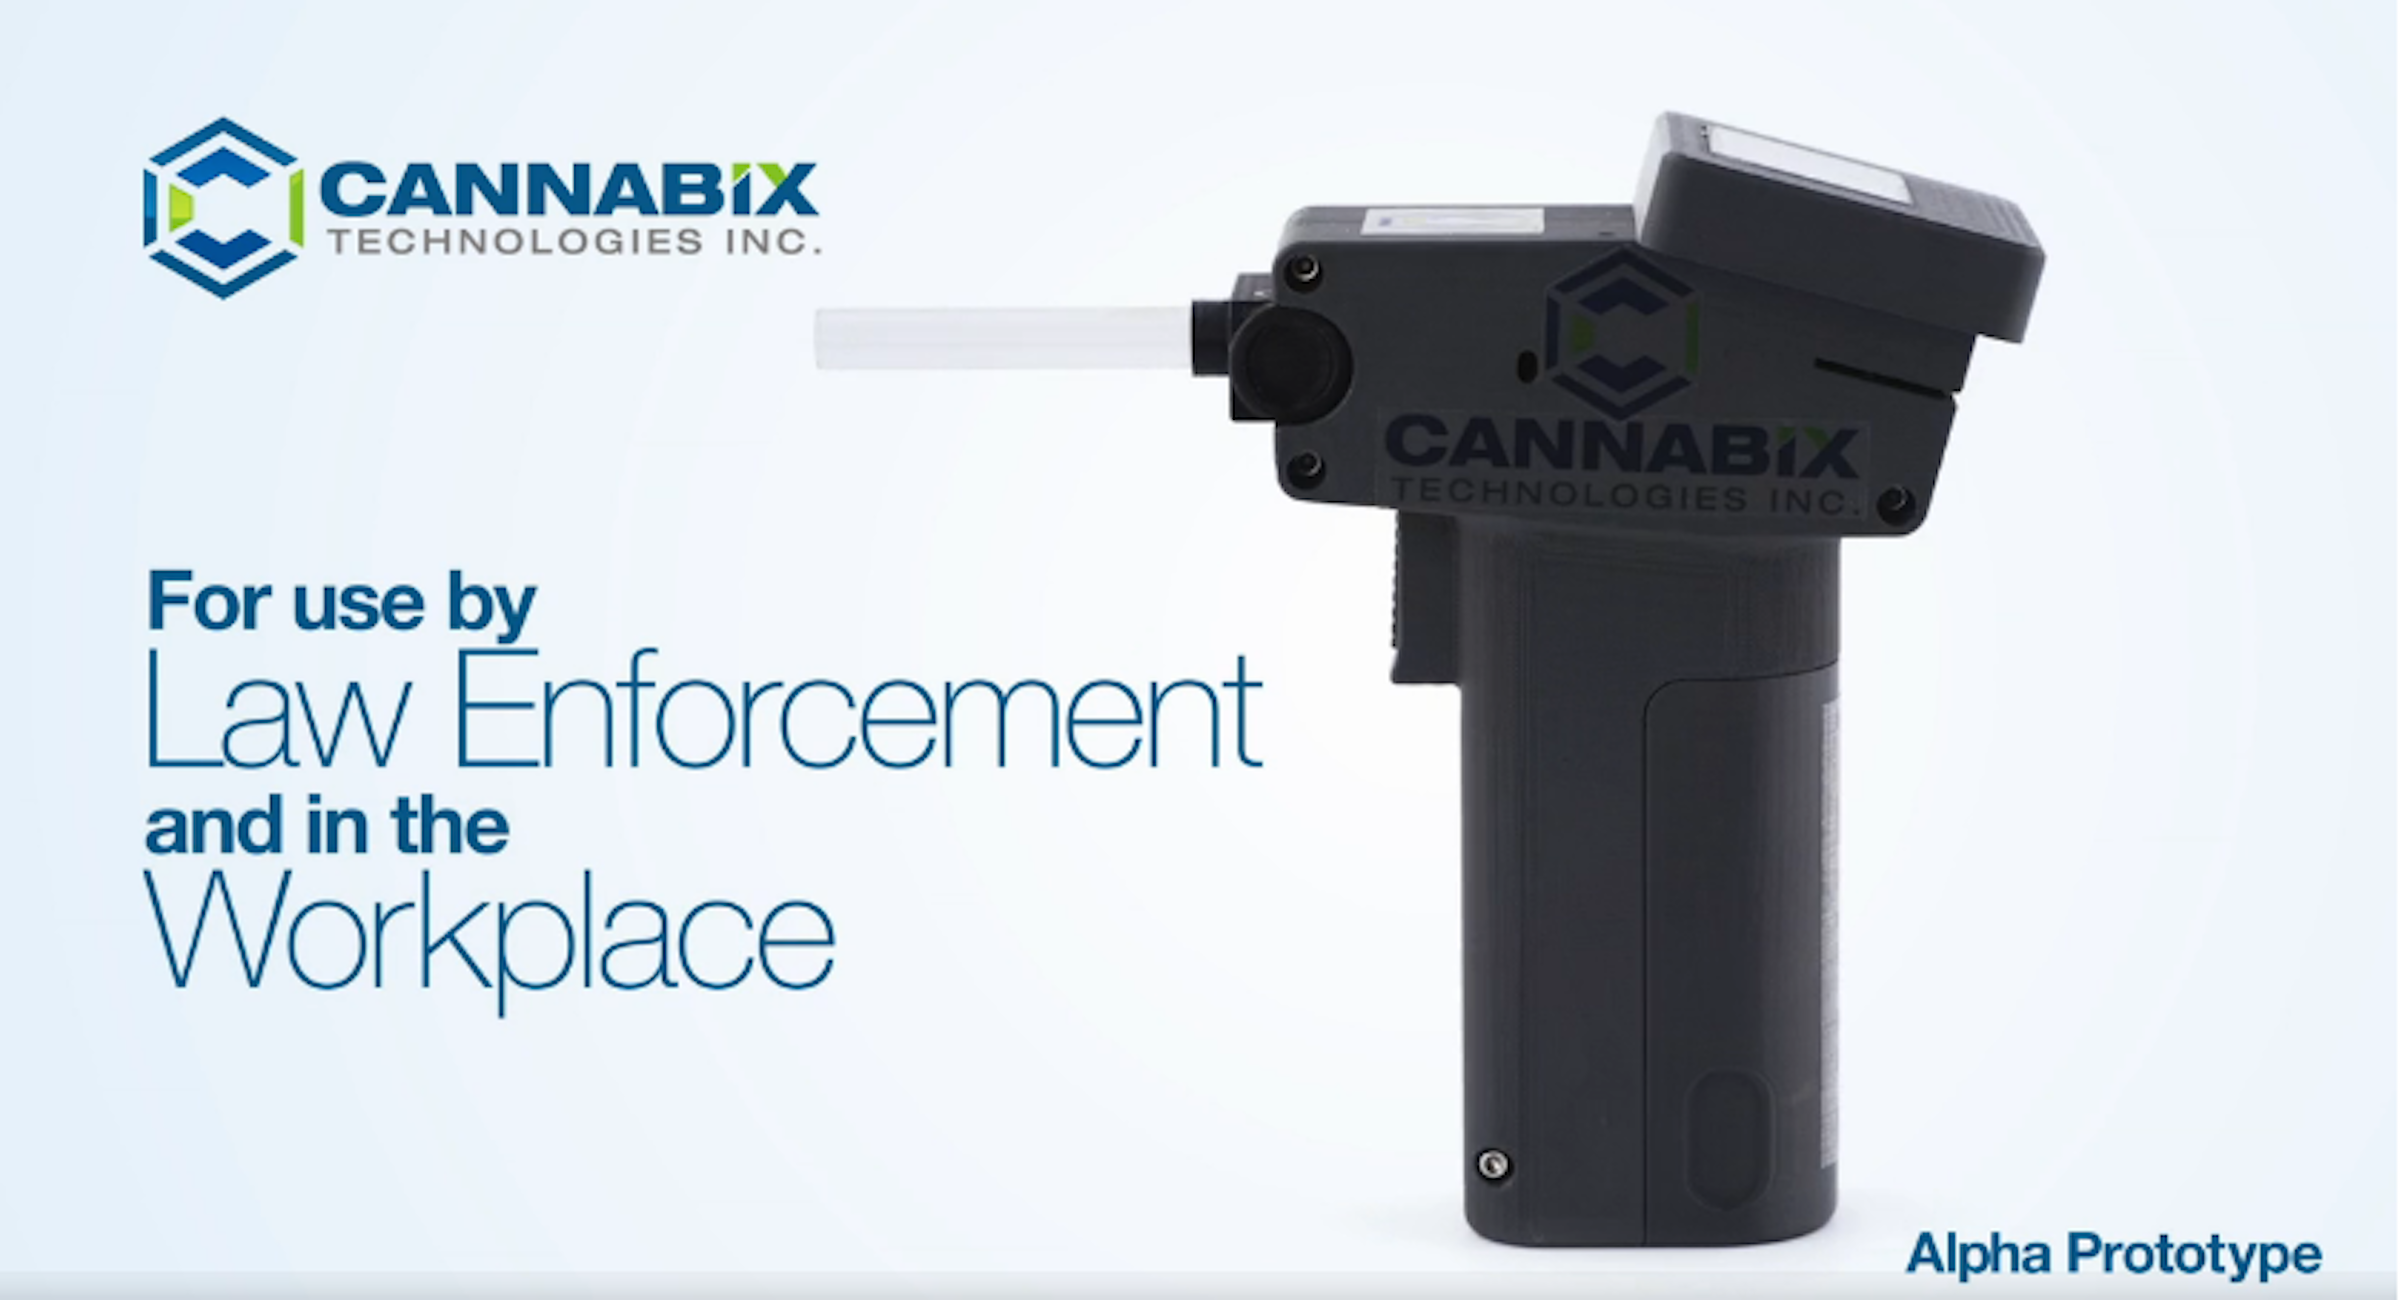 Cannabix prototype